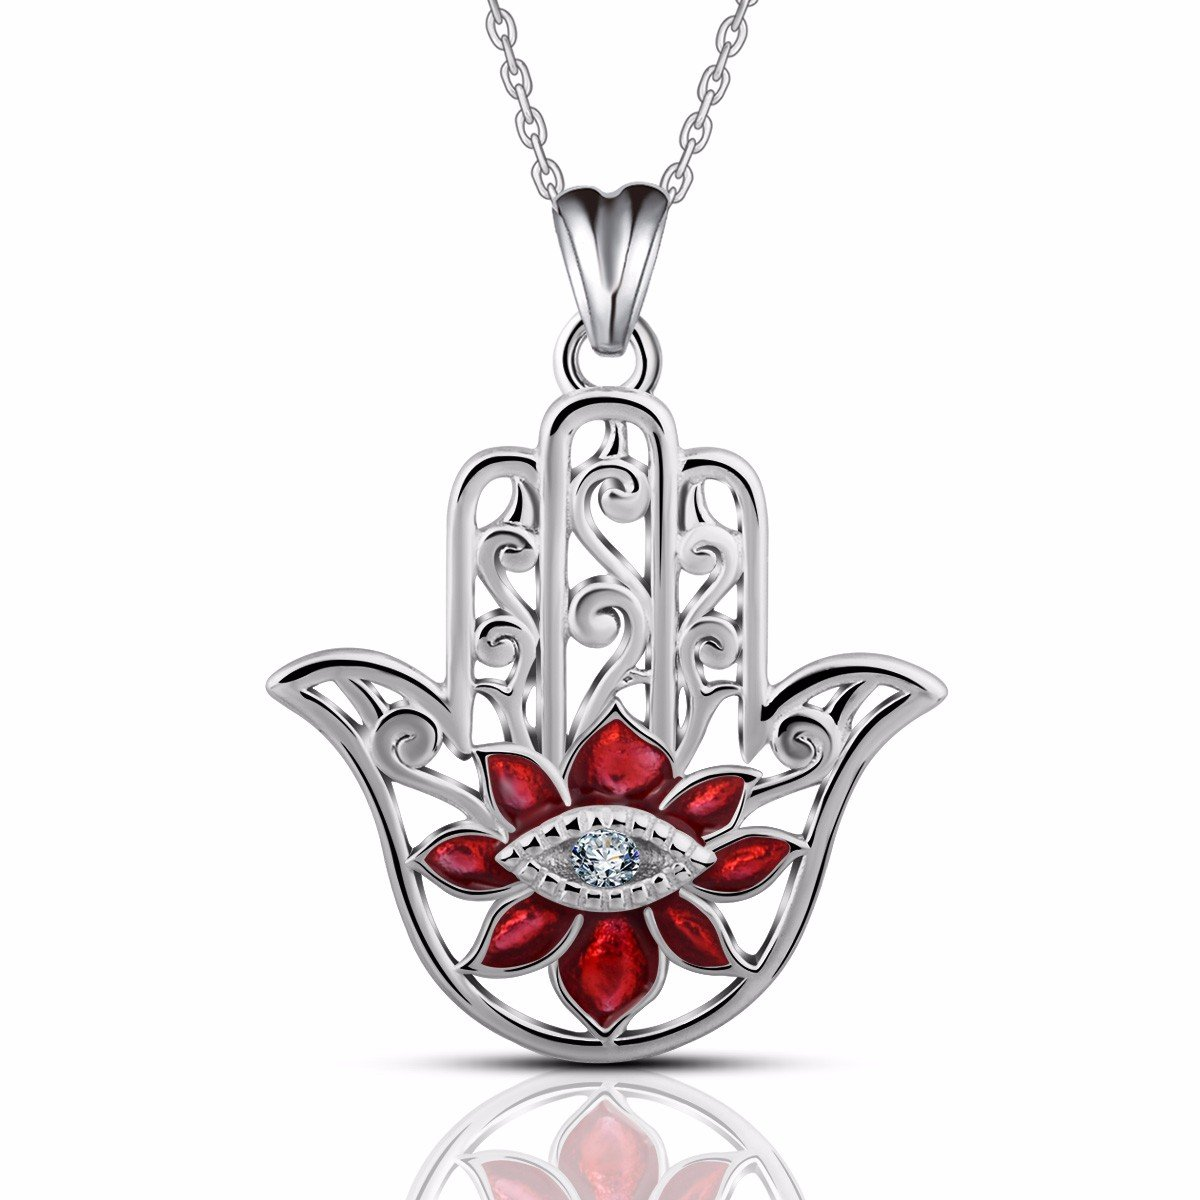 EUDORA 925 Sterling Silver Hamsa Hand Necklace Pendants for WomenEvil Eyes Gifts for Her 18 Red CYD069-1-NL41-18